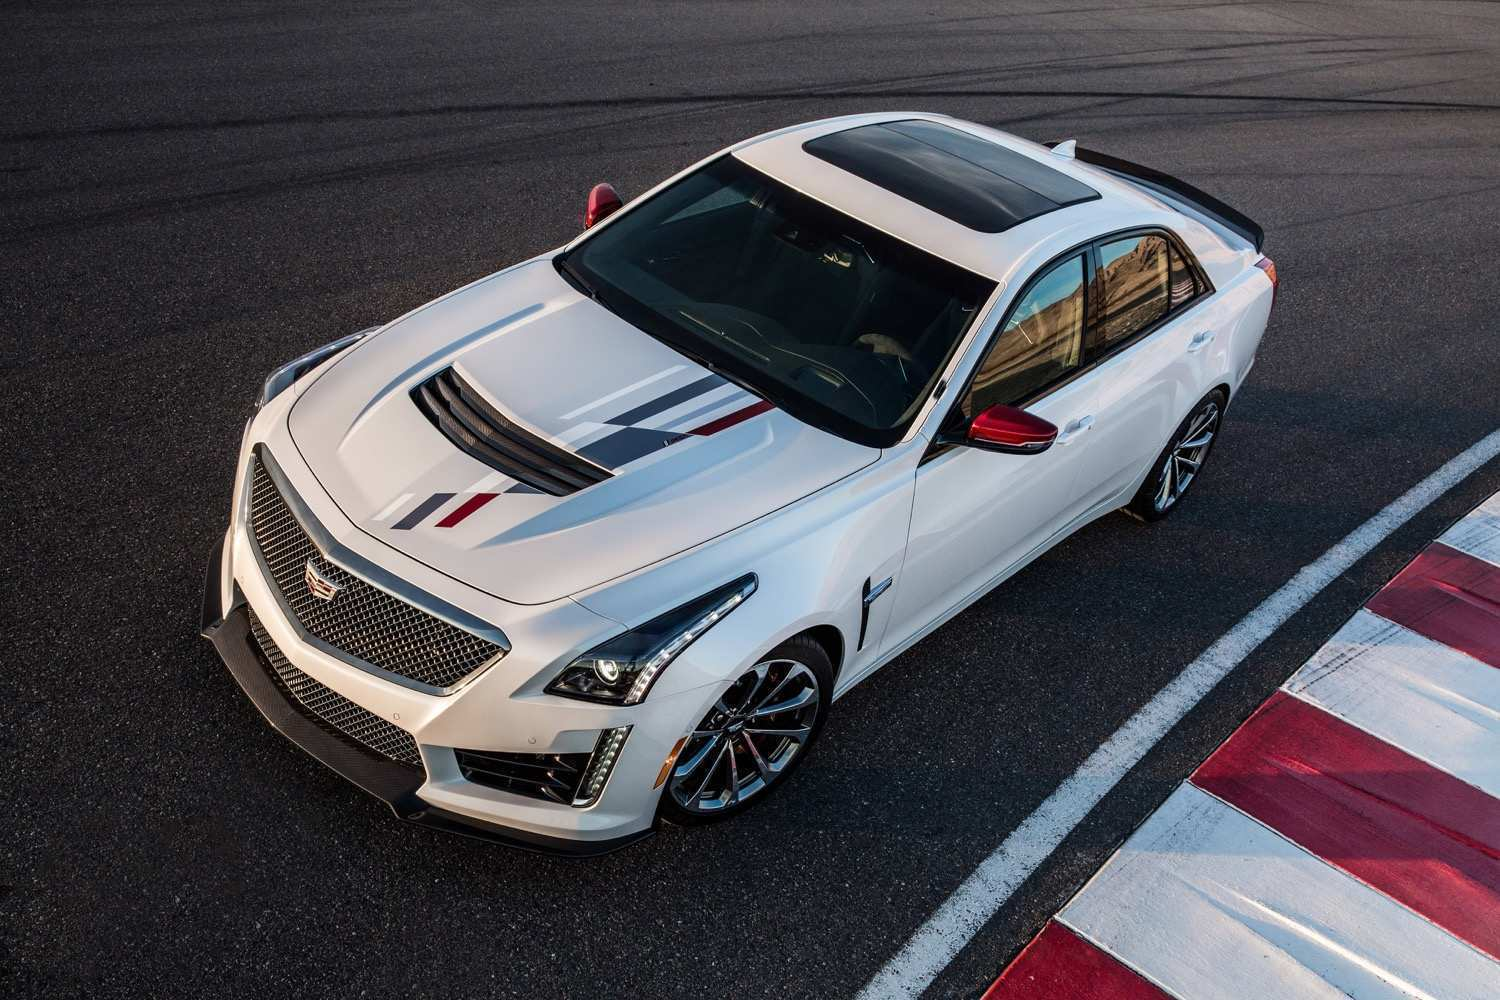 56 Great 2019 Cts V Coupe Specs for 2019 Cts V Coupe